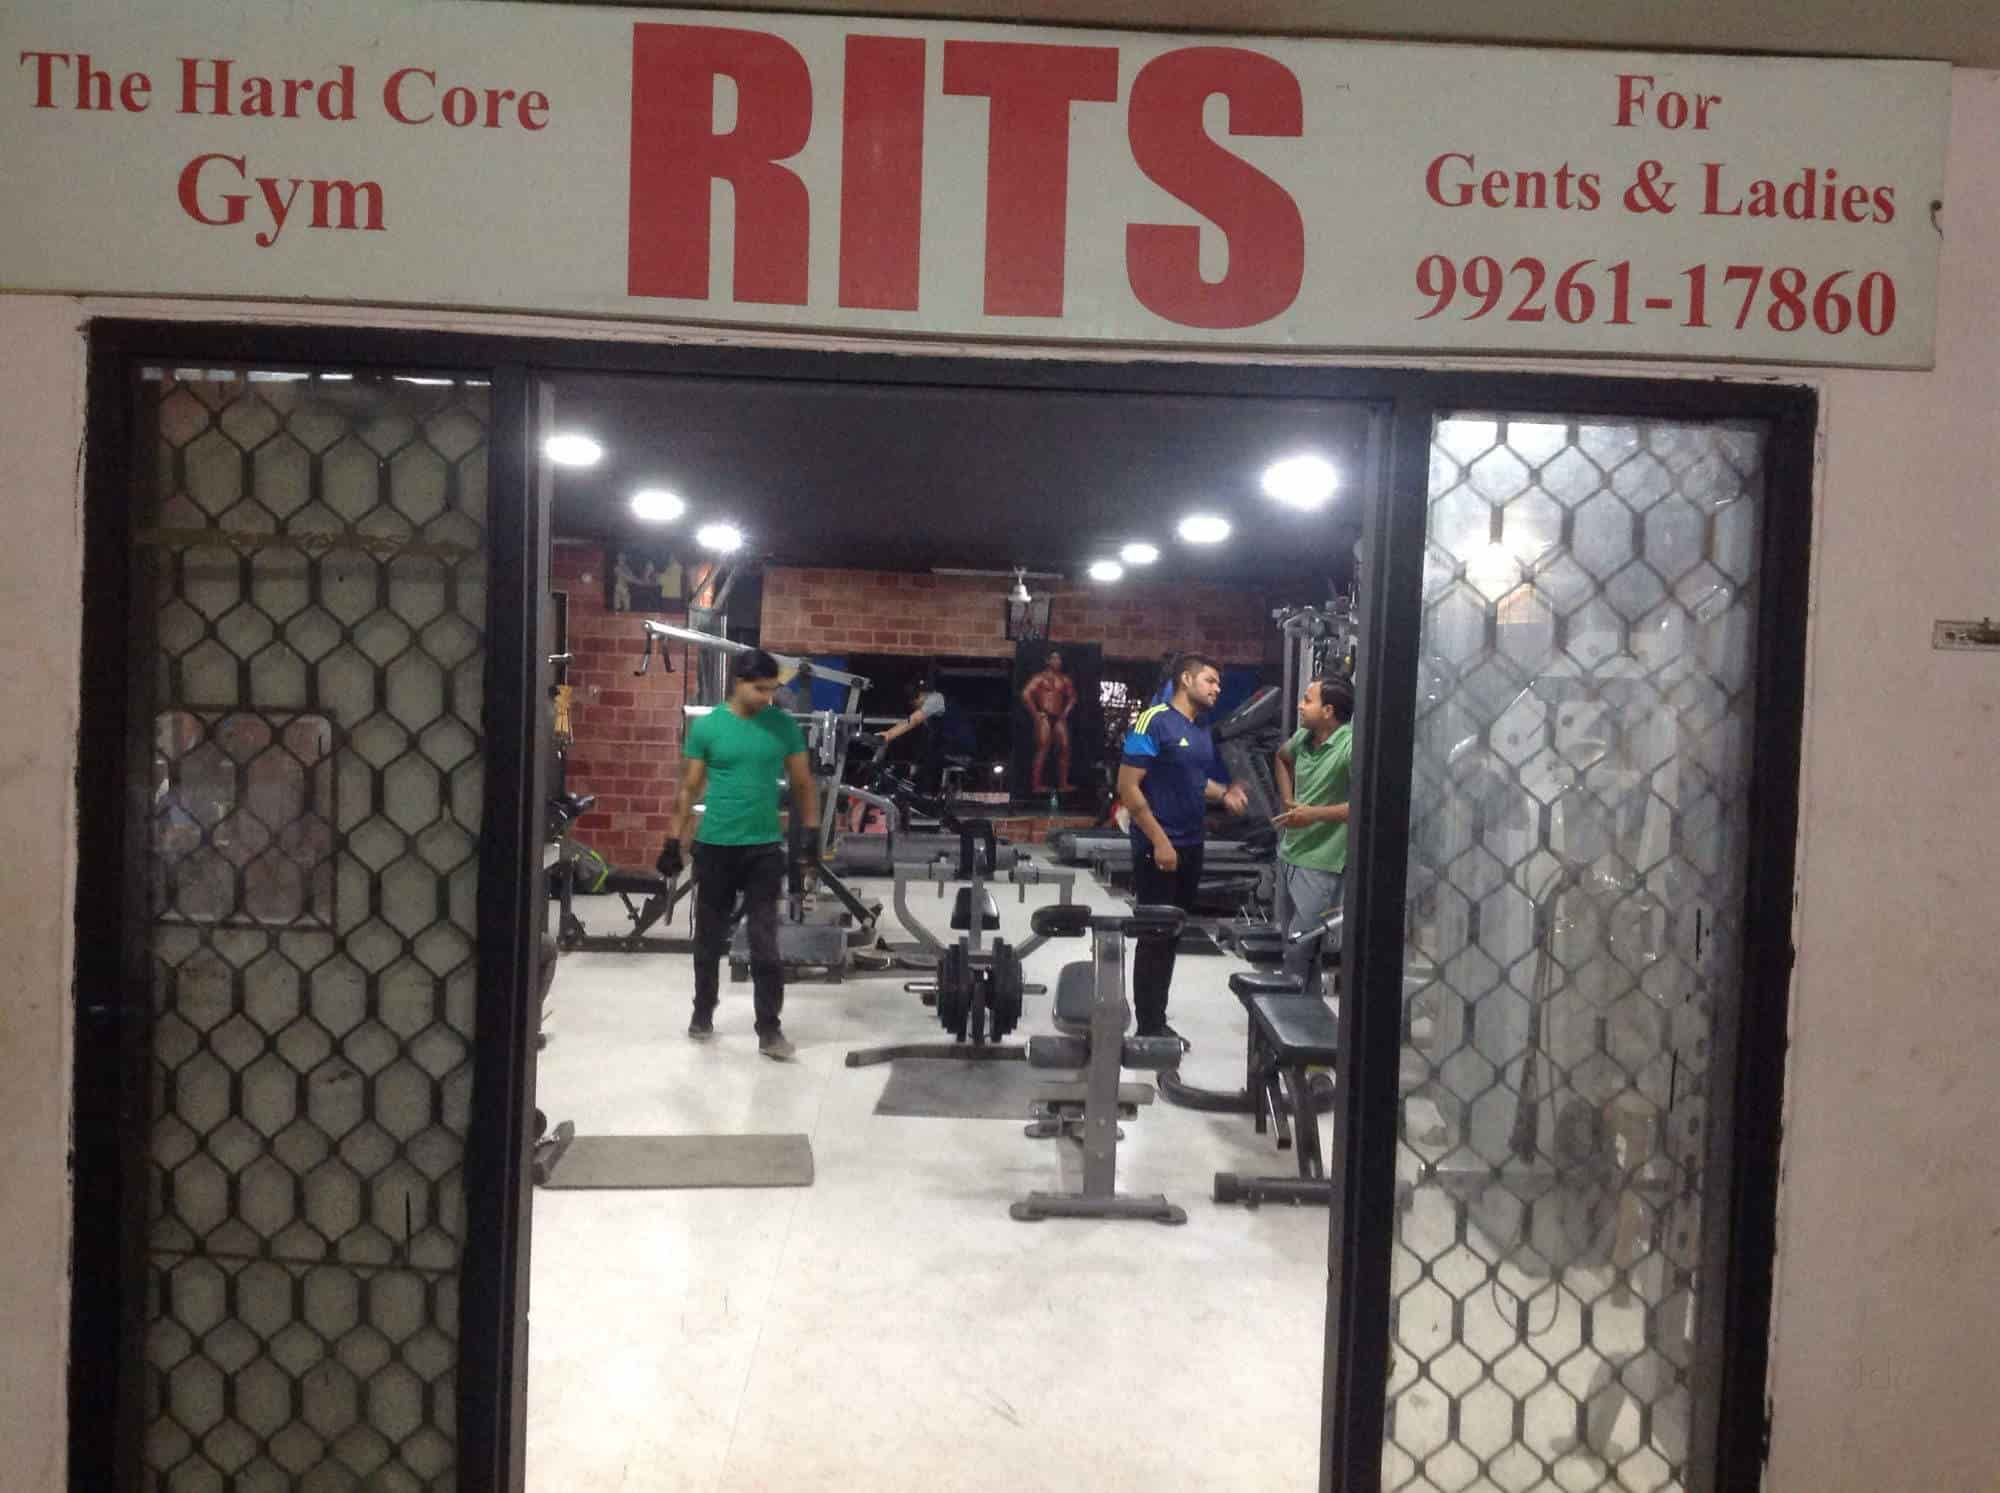 RITS The Hardcore Gym, Old Palasia - Gyms in Indore - Justdial